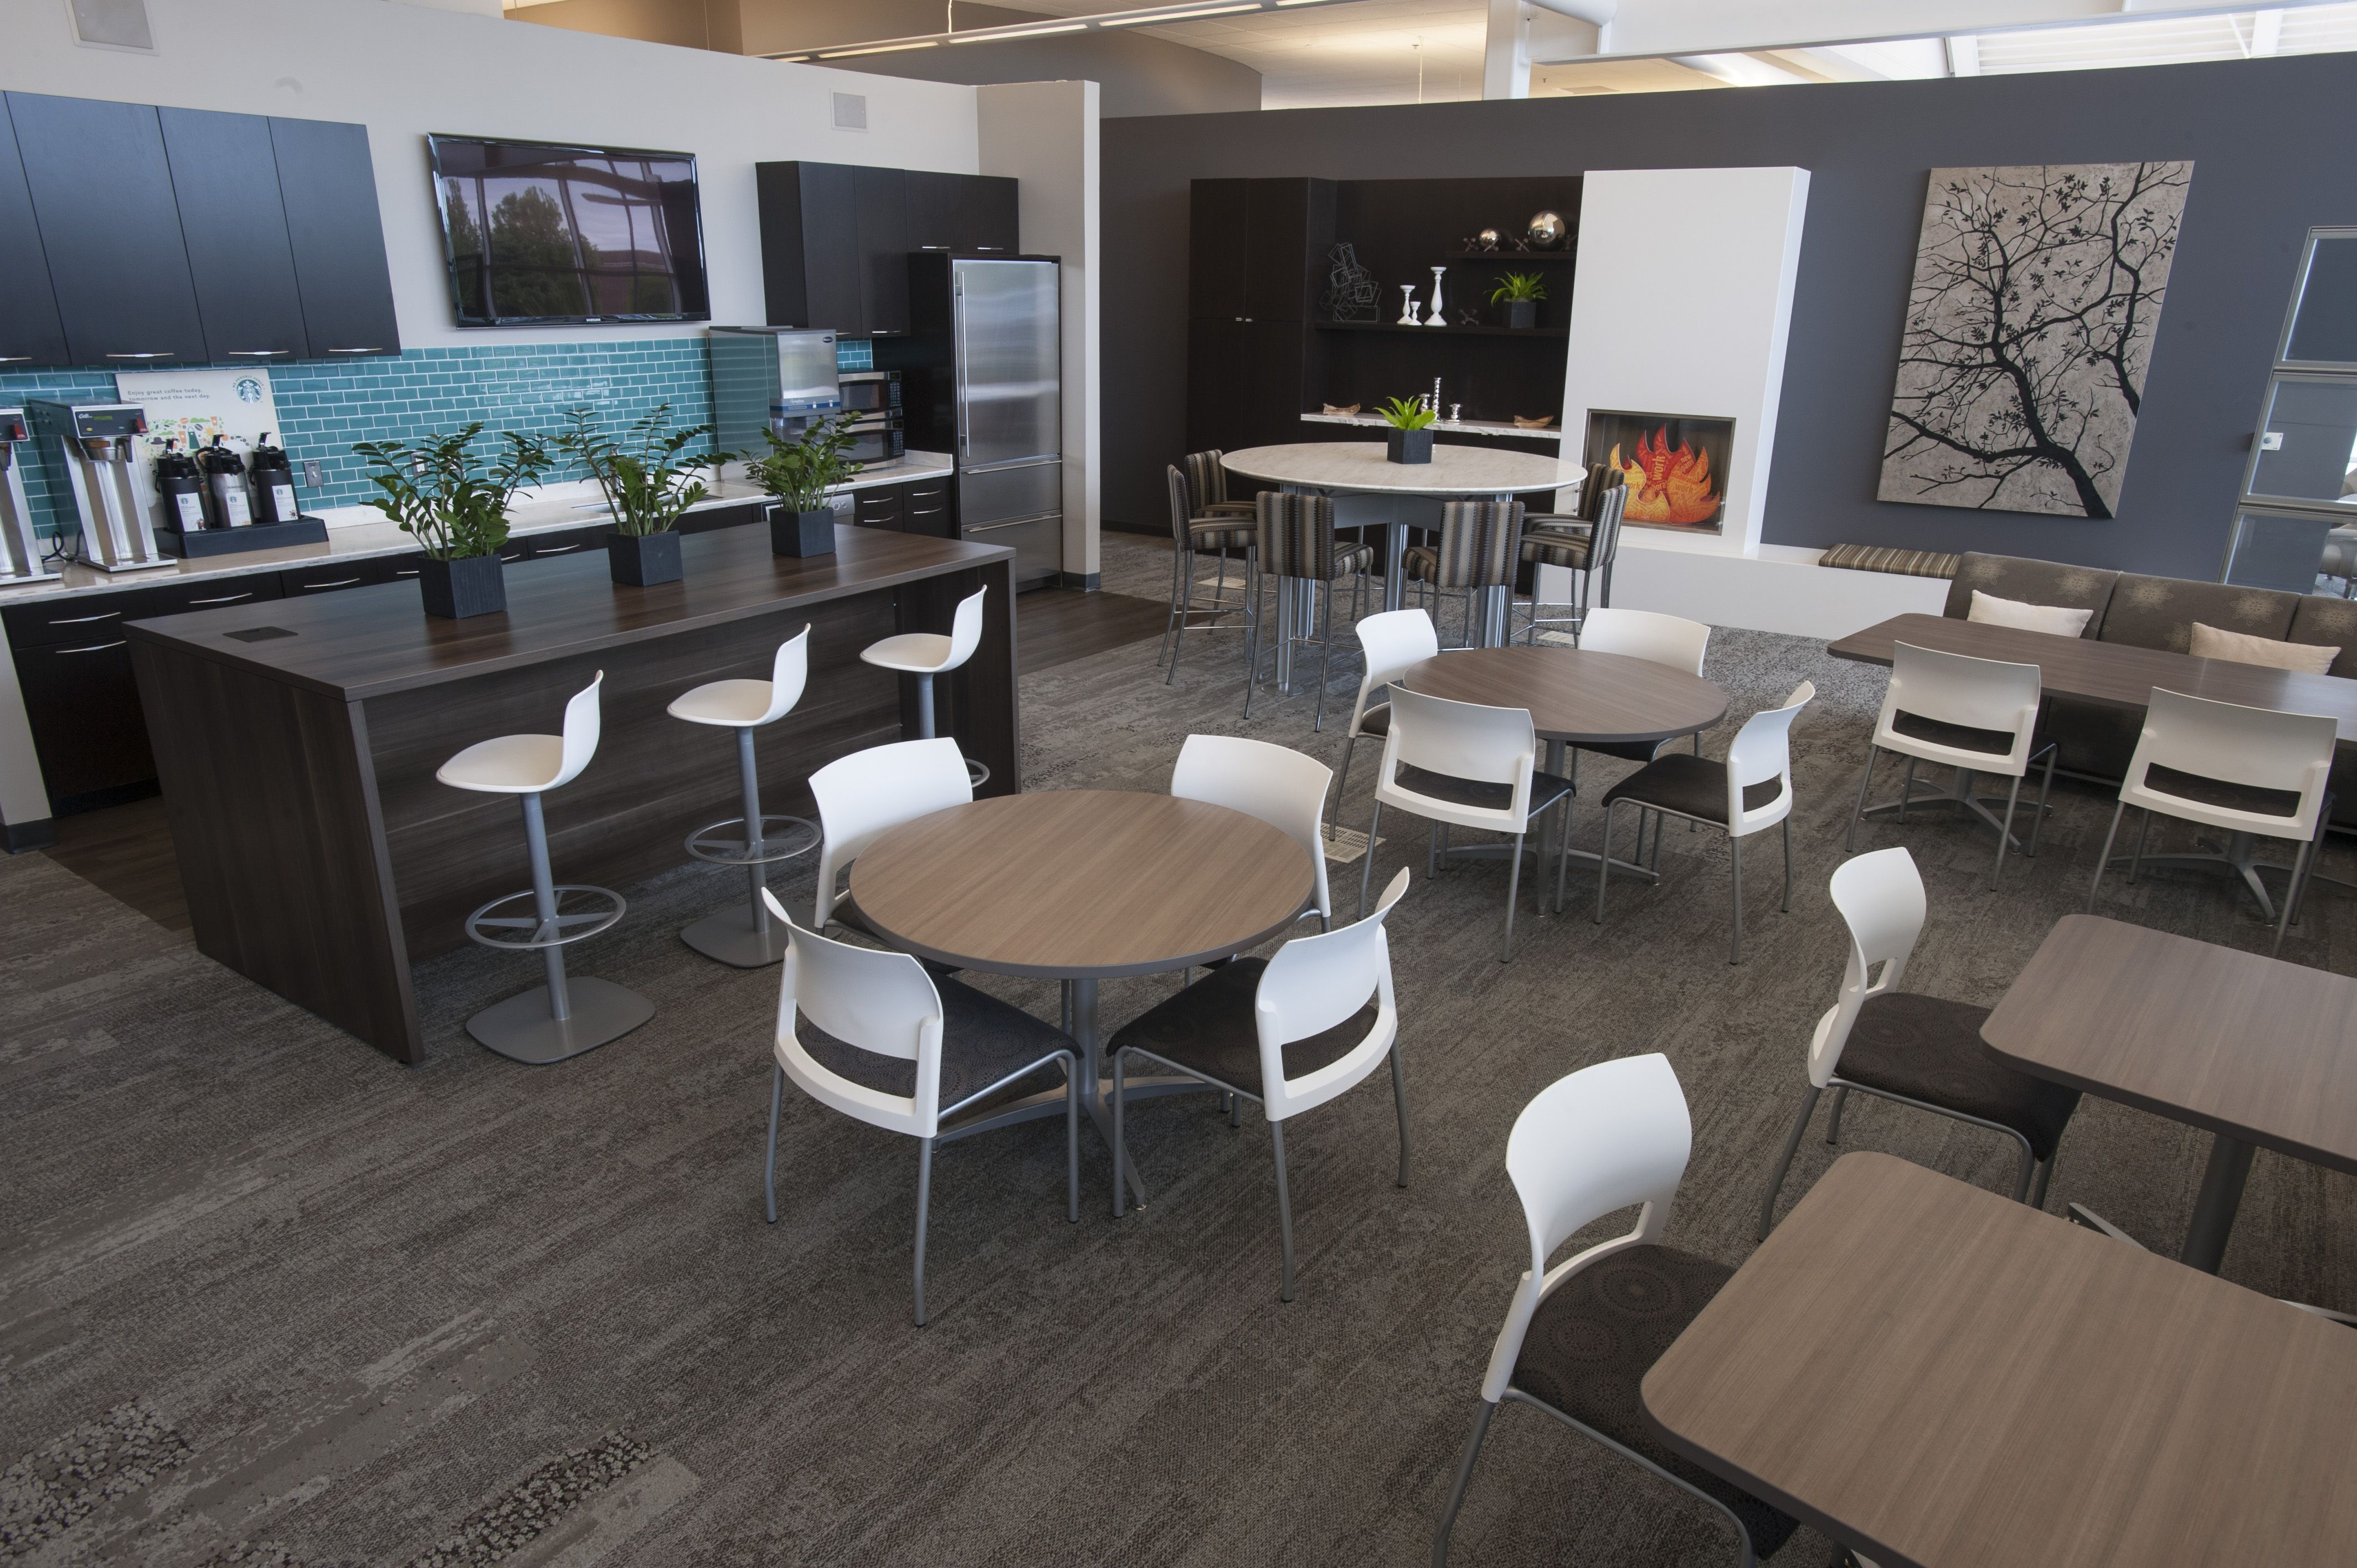 work lounge cafe featuring coalesse enea lottus stools and chairs